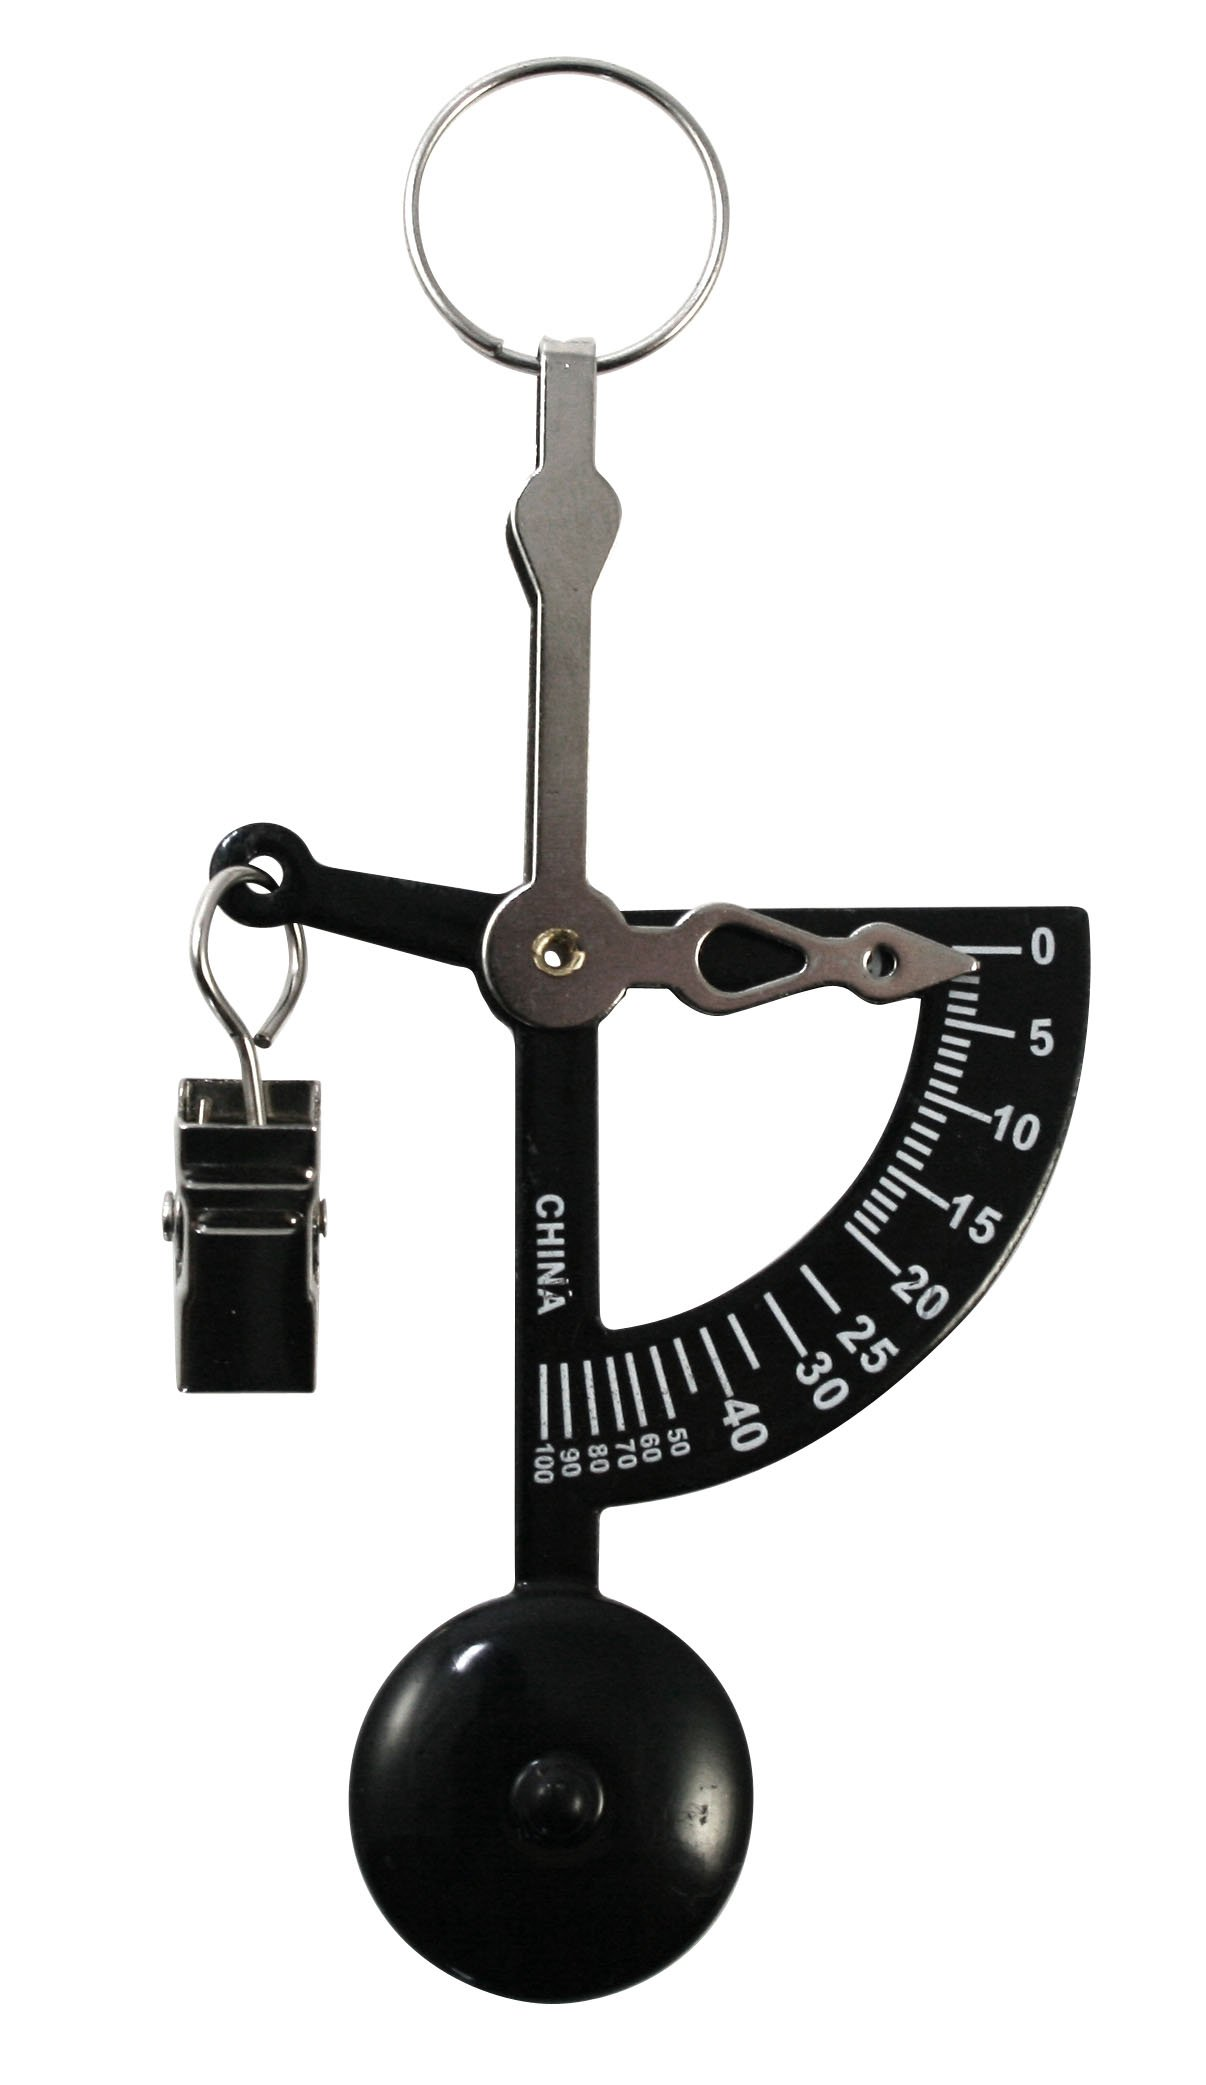 American Weigh Scales AMWHAND-BLK Black Hand Letter Scale with 100G and 4OZ Capacity